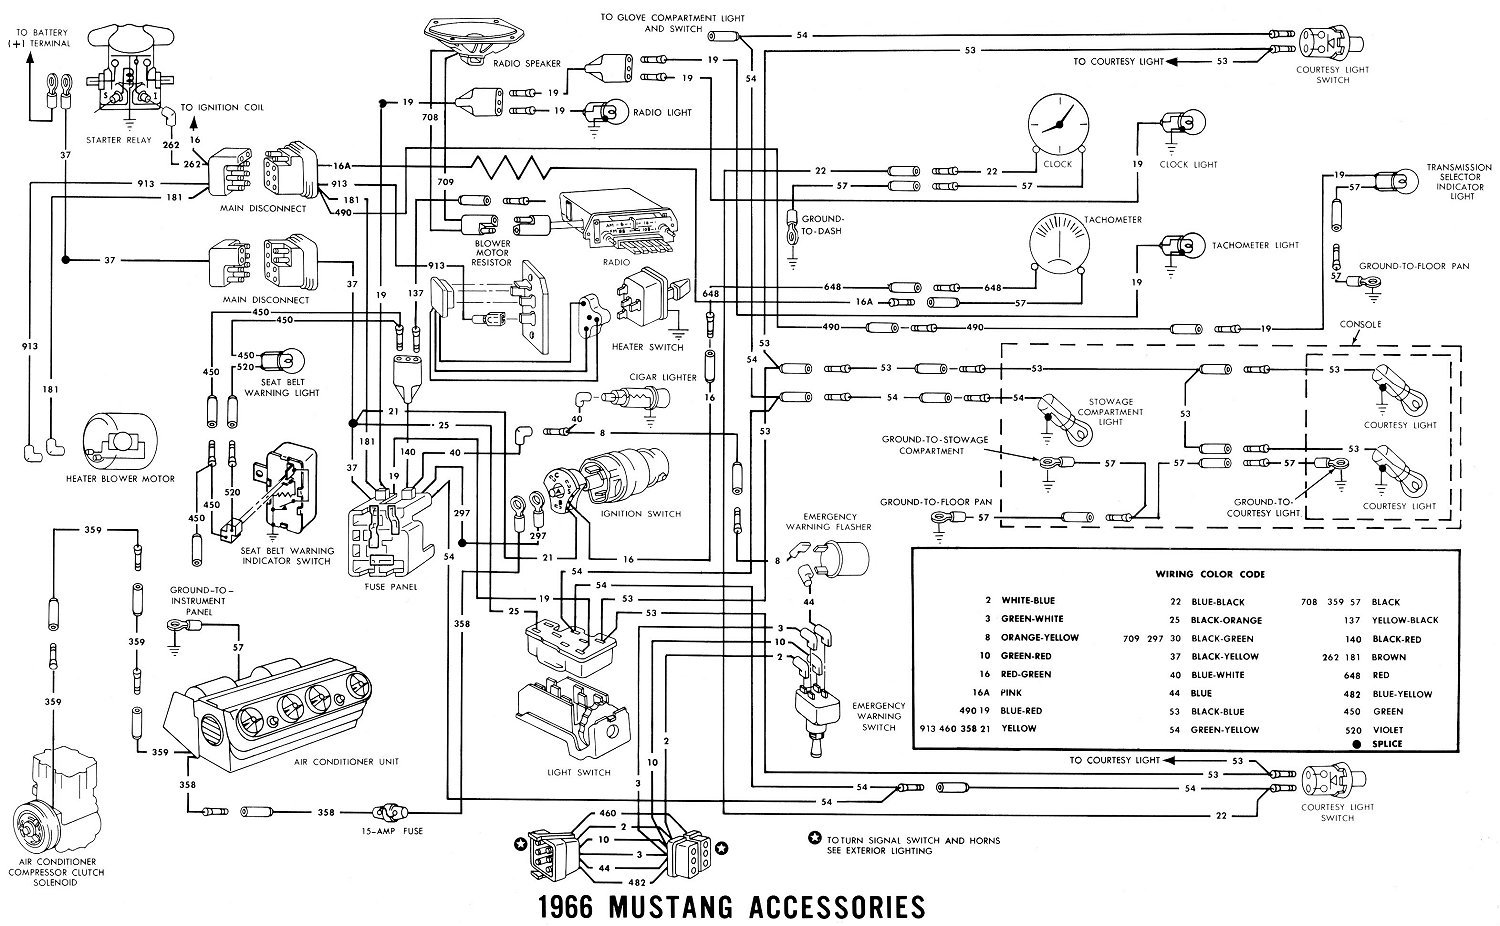 hight resolution of 2014 ford escape wiring diagram wiring library diagram h9 2014 ford escape exhaust system 2014 ford escape wiring diagram